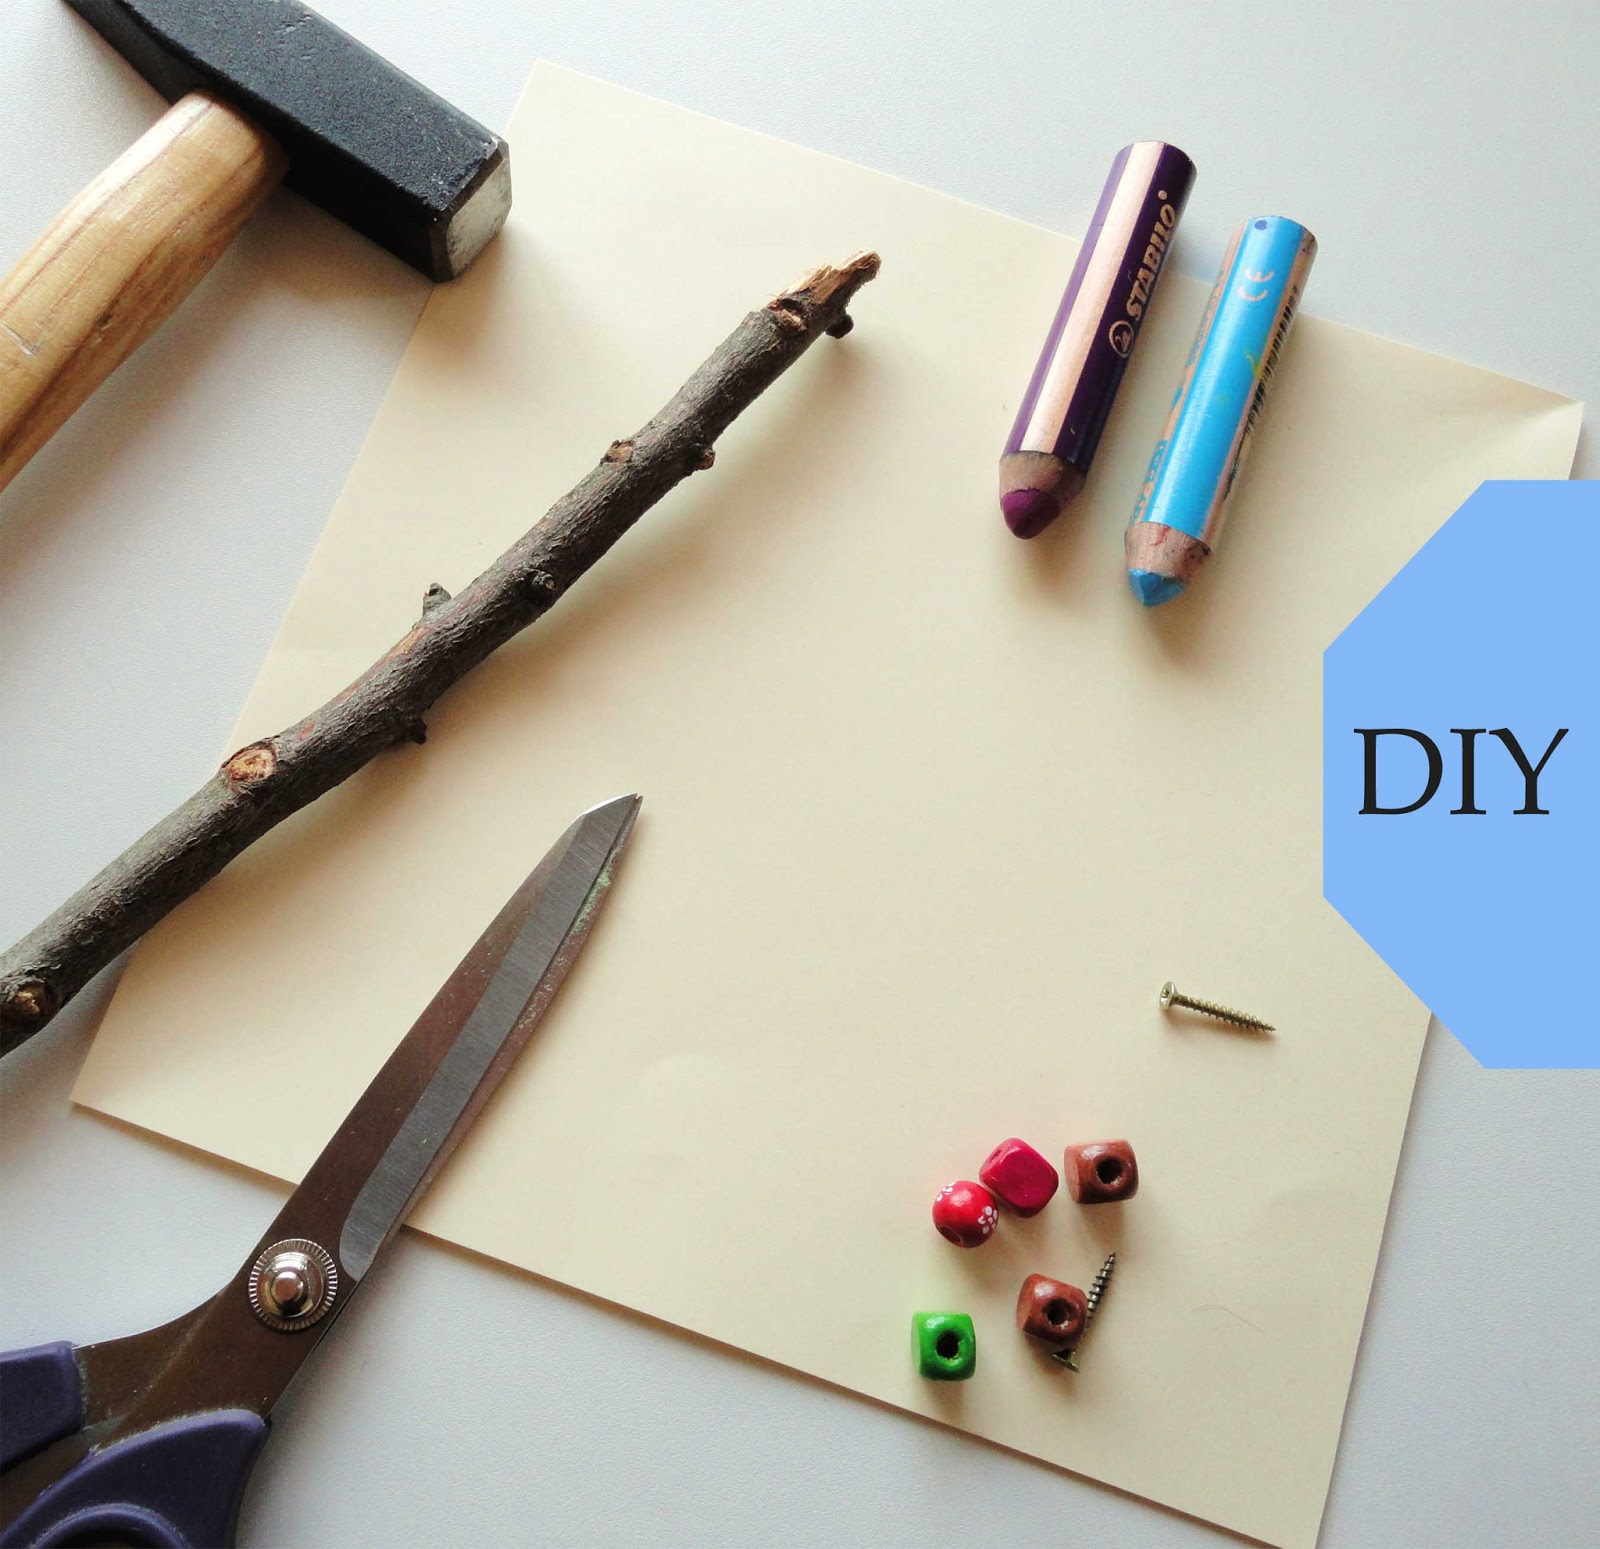 Spunkynelda diy windrad basteln - Do it yourself kinderzimmer gestalten ...